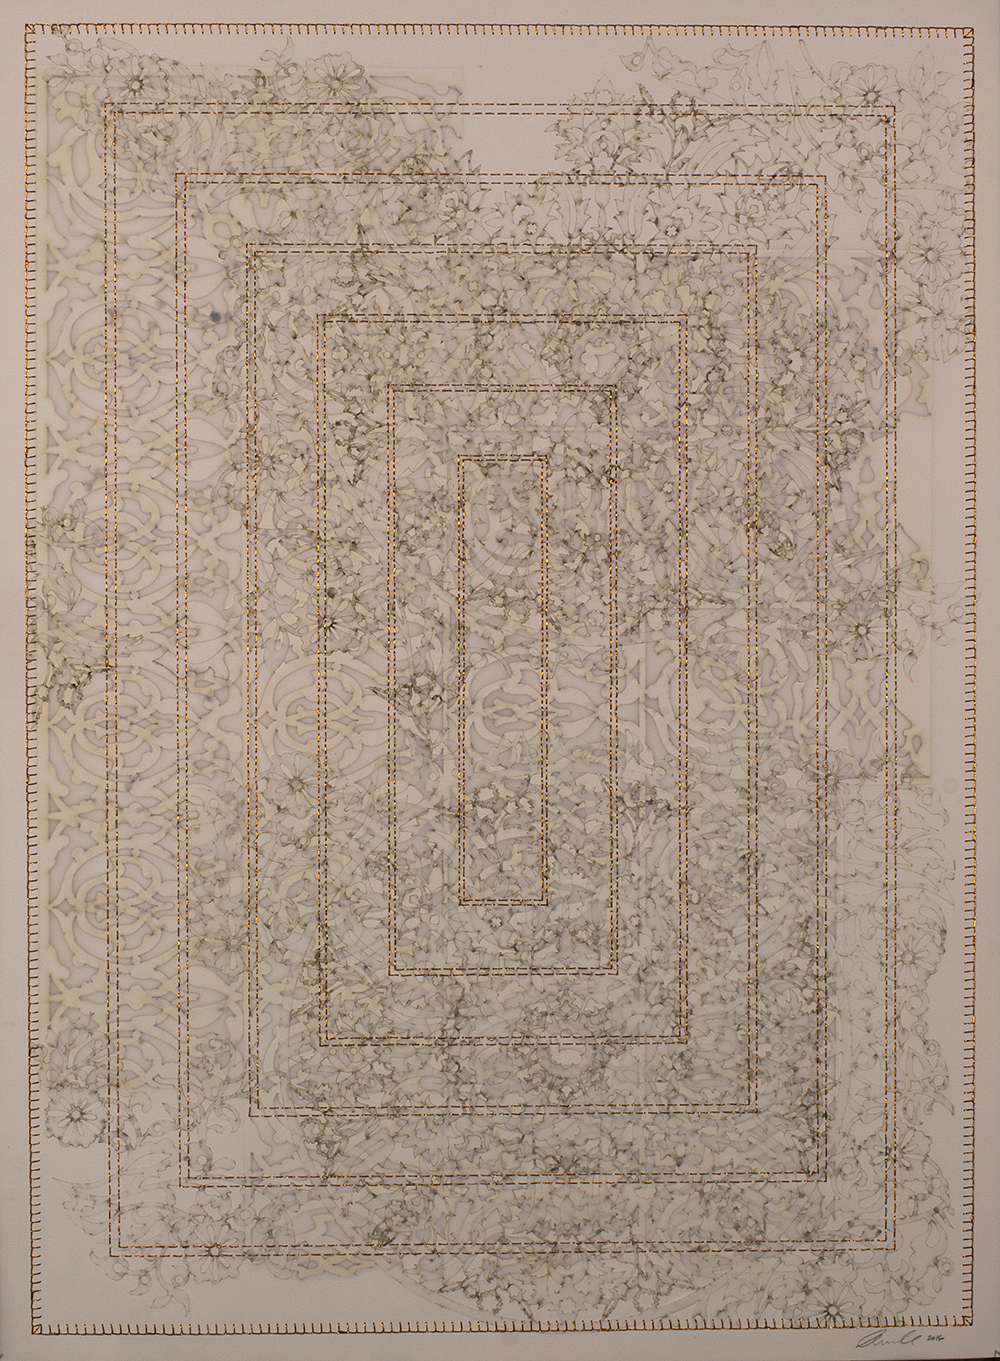 """Antique Lace 3   Mixed media on paper (Laser-cut patterns on paper with mylar and embroidery)  29.5"""" x 21.5"""" 2016  Walking With My Mother's Shadow-Artist Statement"""